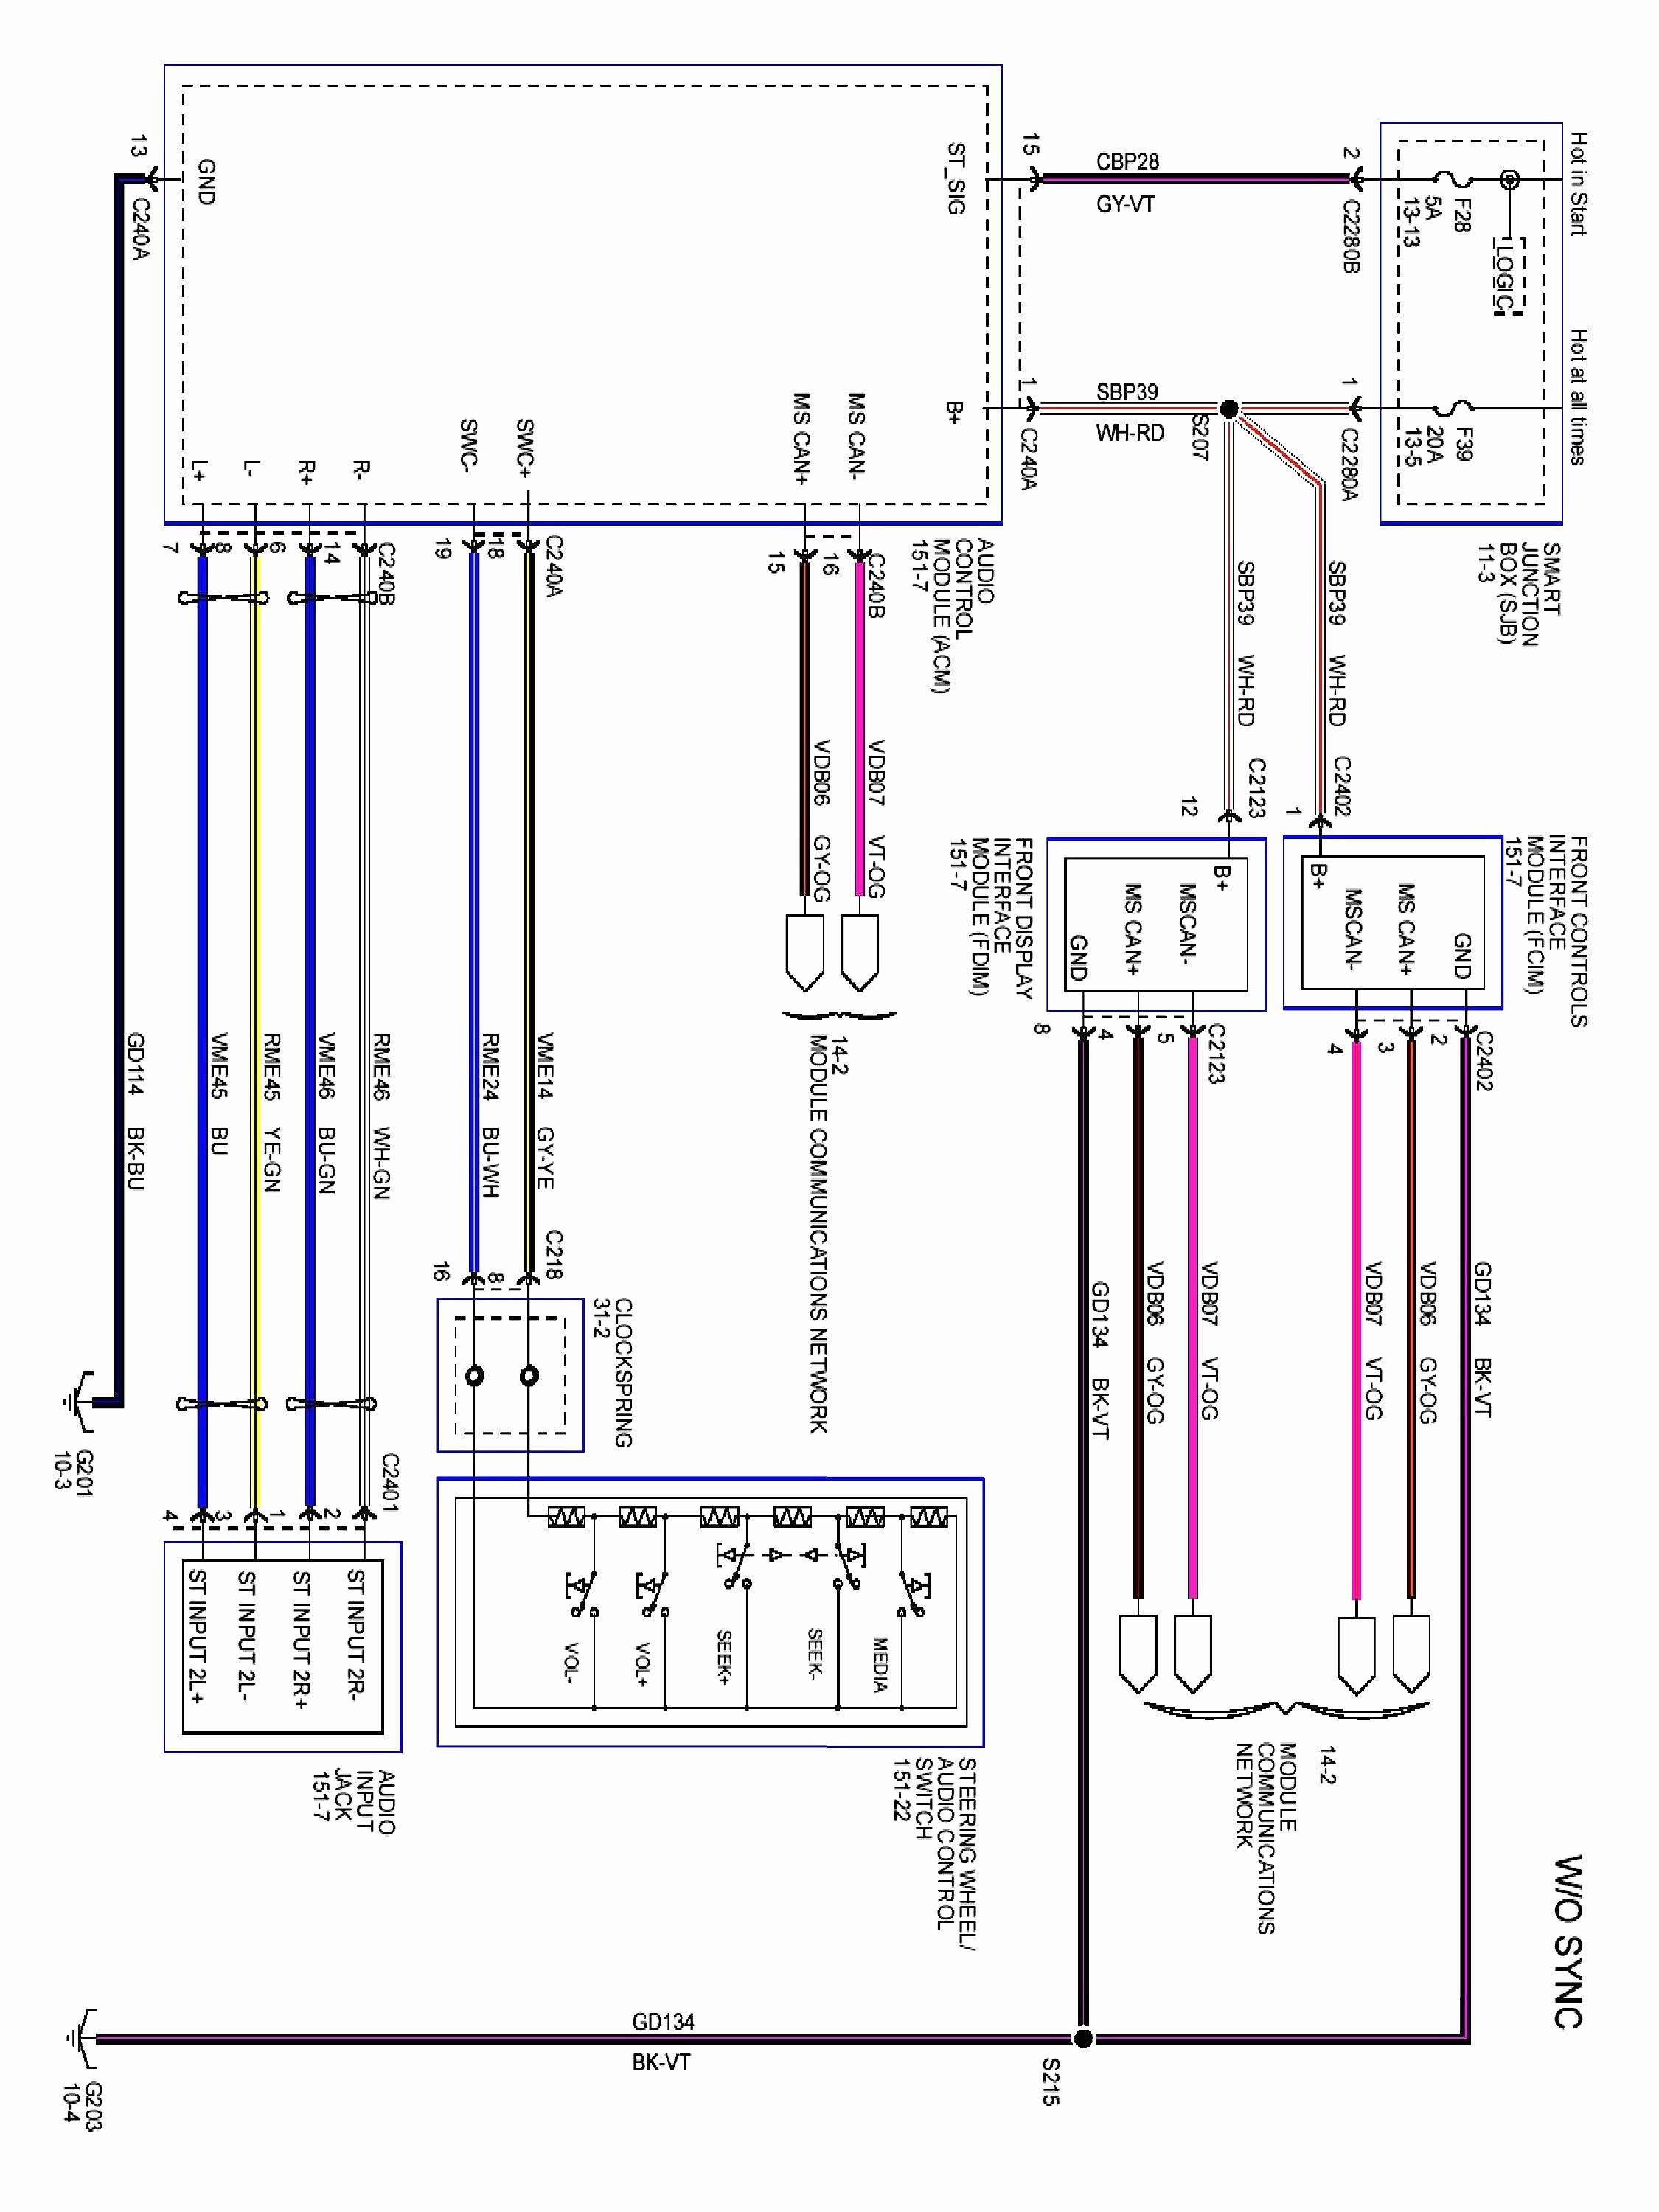 car sound wiring diagram Download-Wiring Diagram For Amplifier Car Stereo Best Amplifier Wiring Diagram Inspirational Car Stereo Wiring Diagrams 0d 19-o